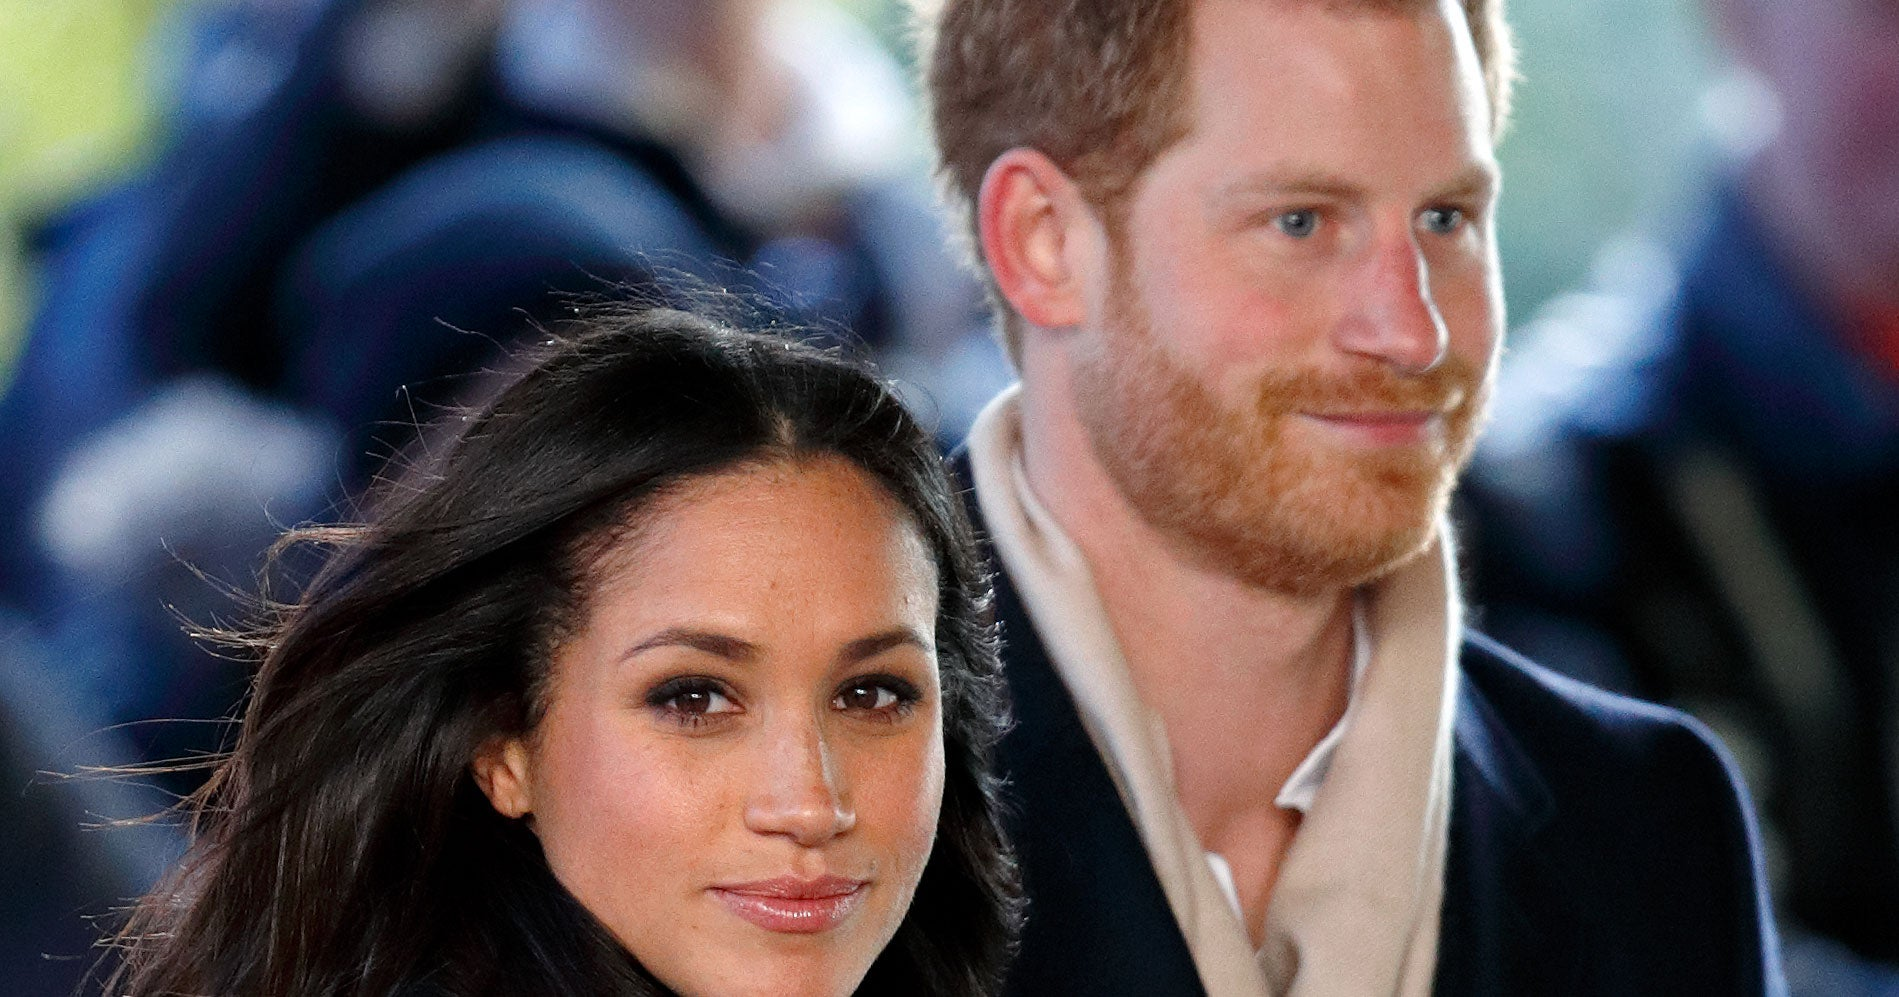 Megxit: Ditching Your Toxic In-Laws Is Perfectly Fine